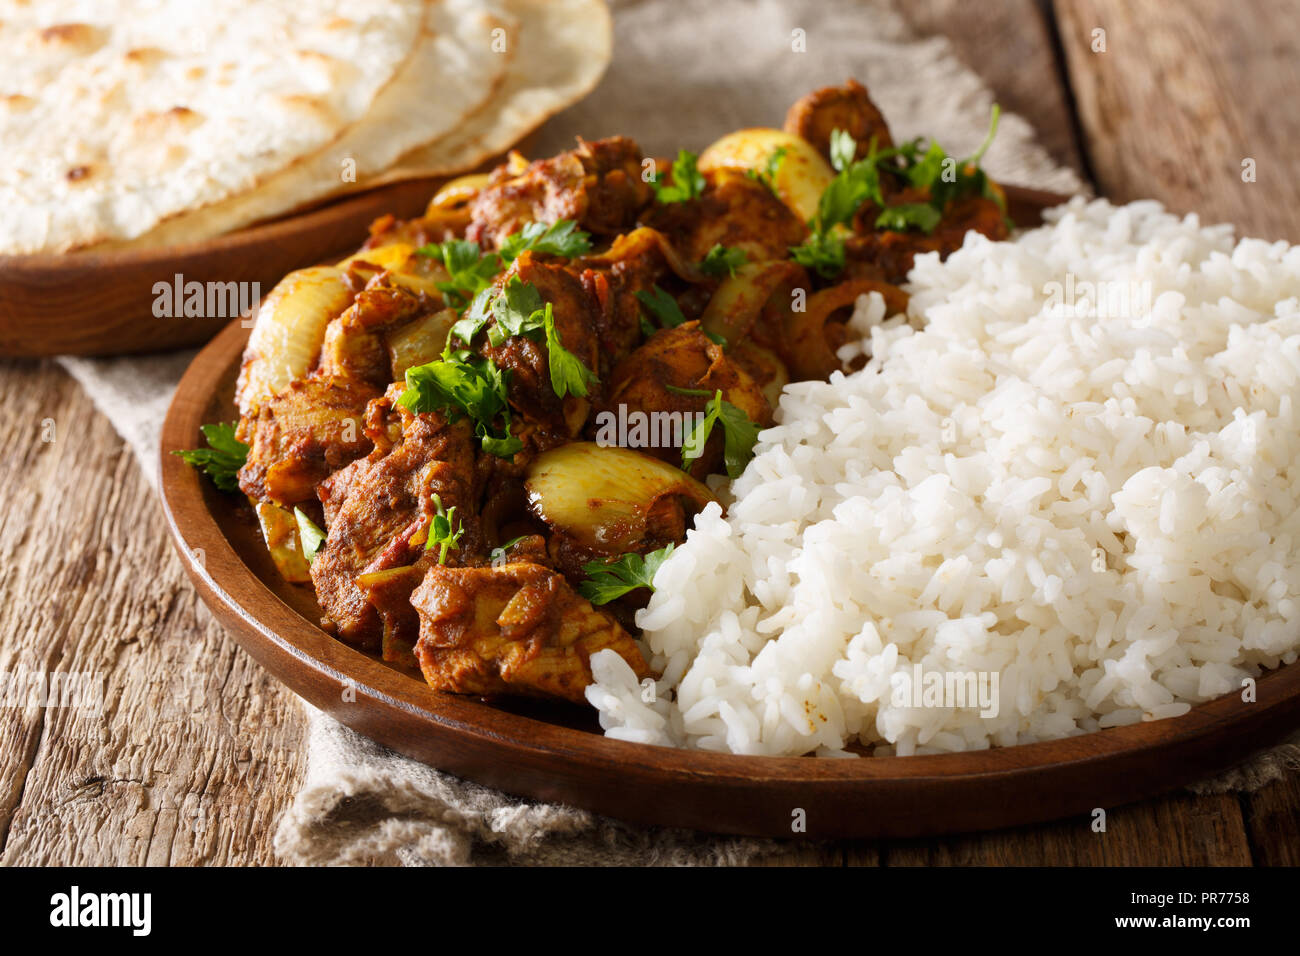 Punjabi Dish Stock Photos & Punjabi Dish Stock Images - Alamy